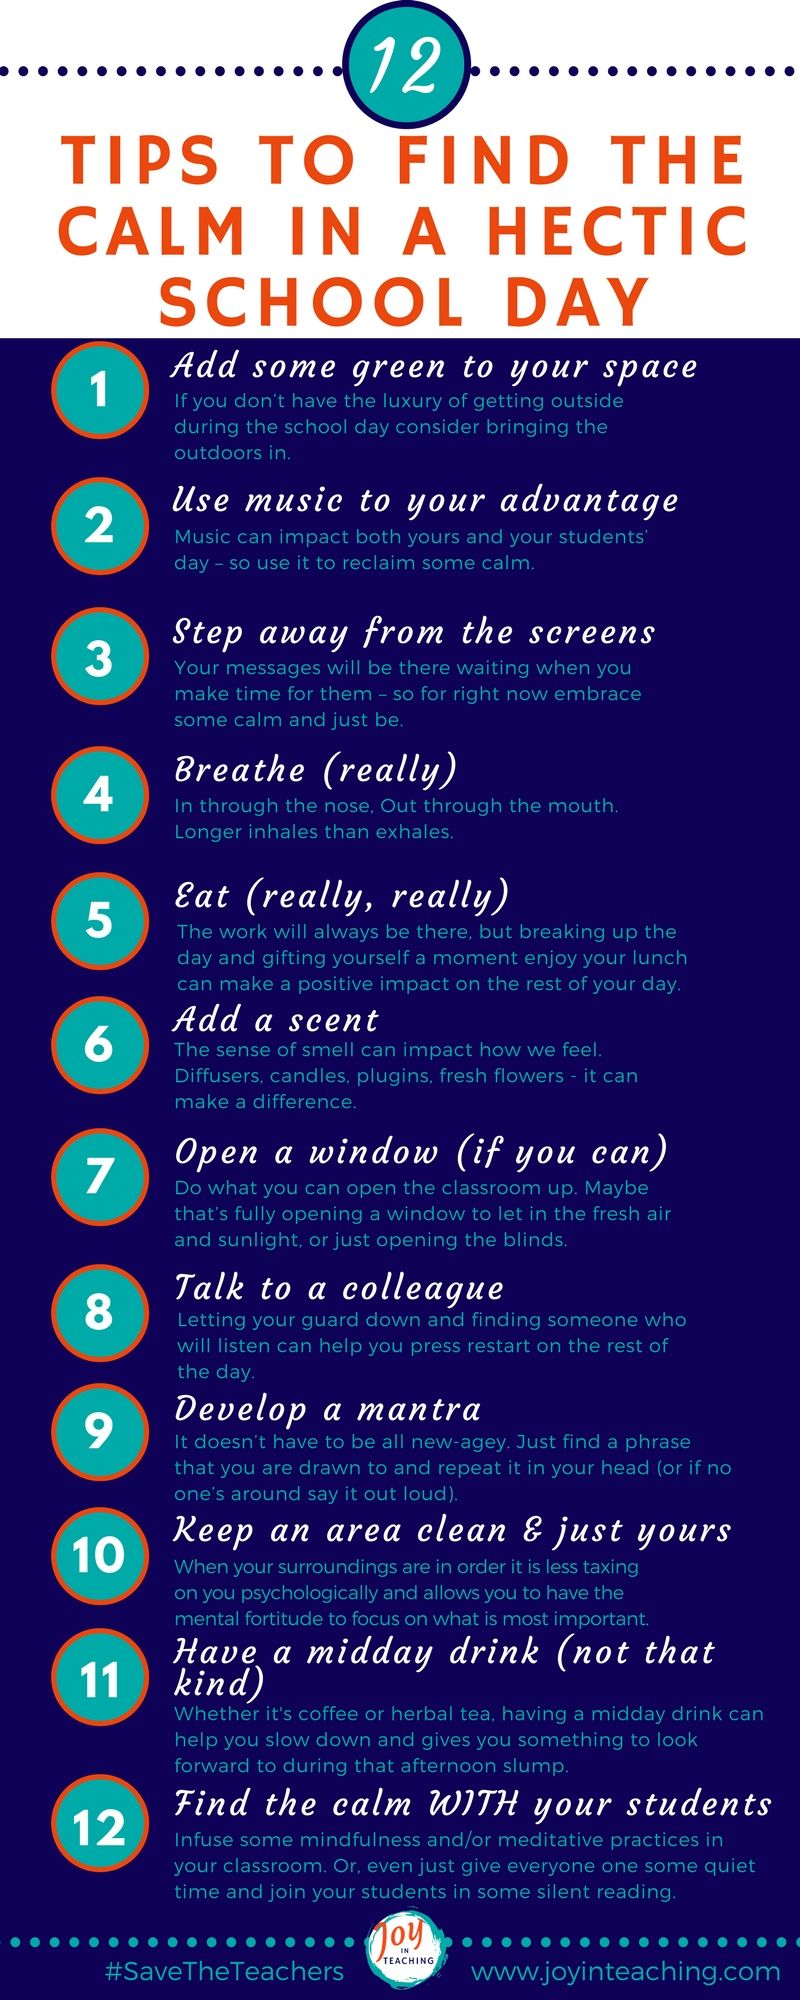 12 Tips To Find The Calm In A Hectic School Day Teaching Tips Homeschool Advice School Days